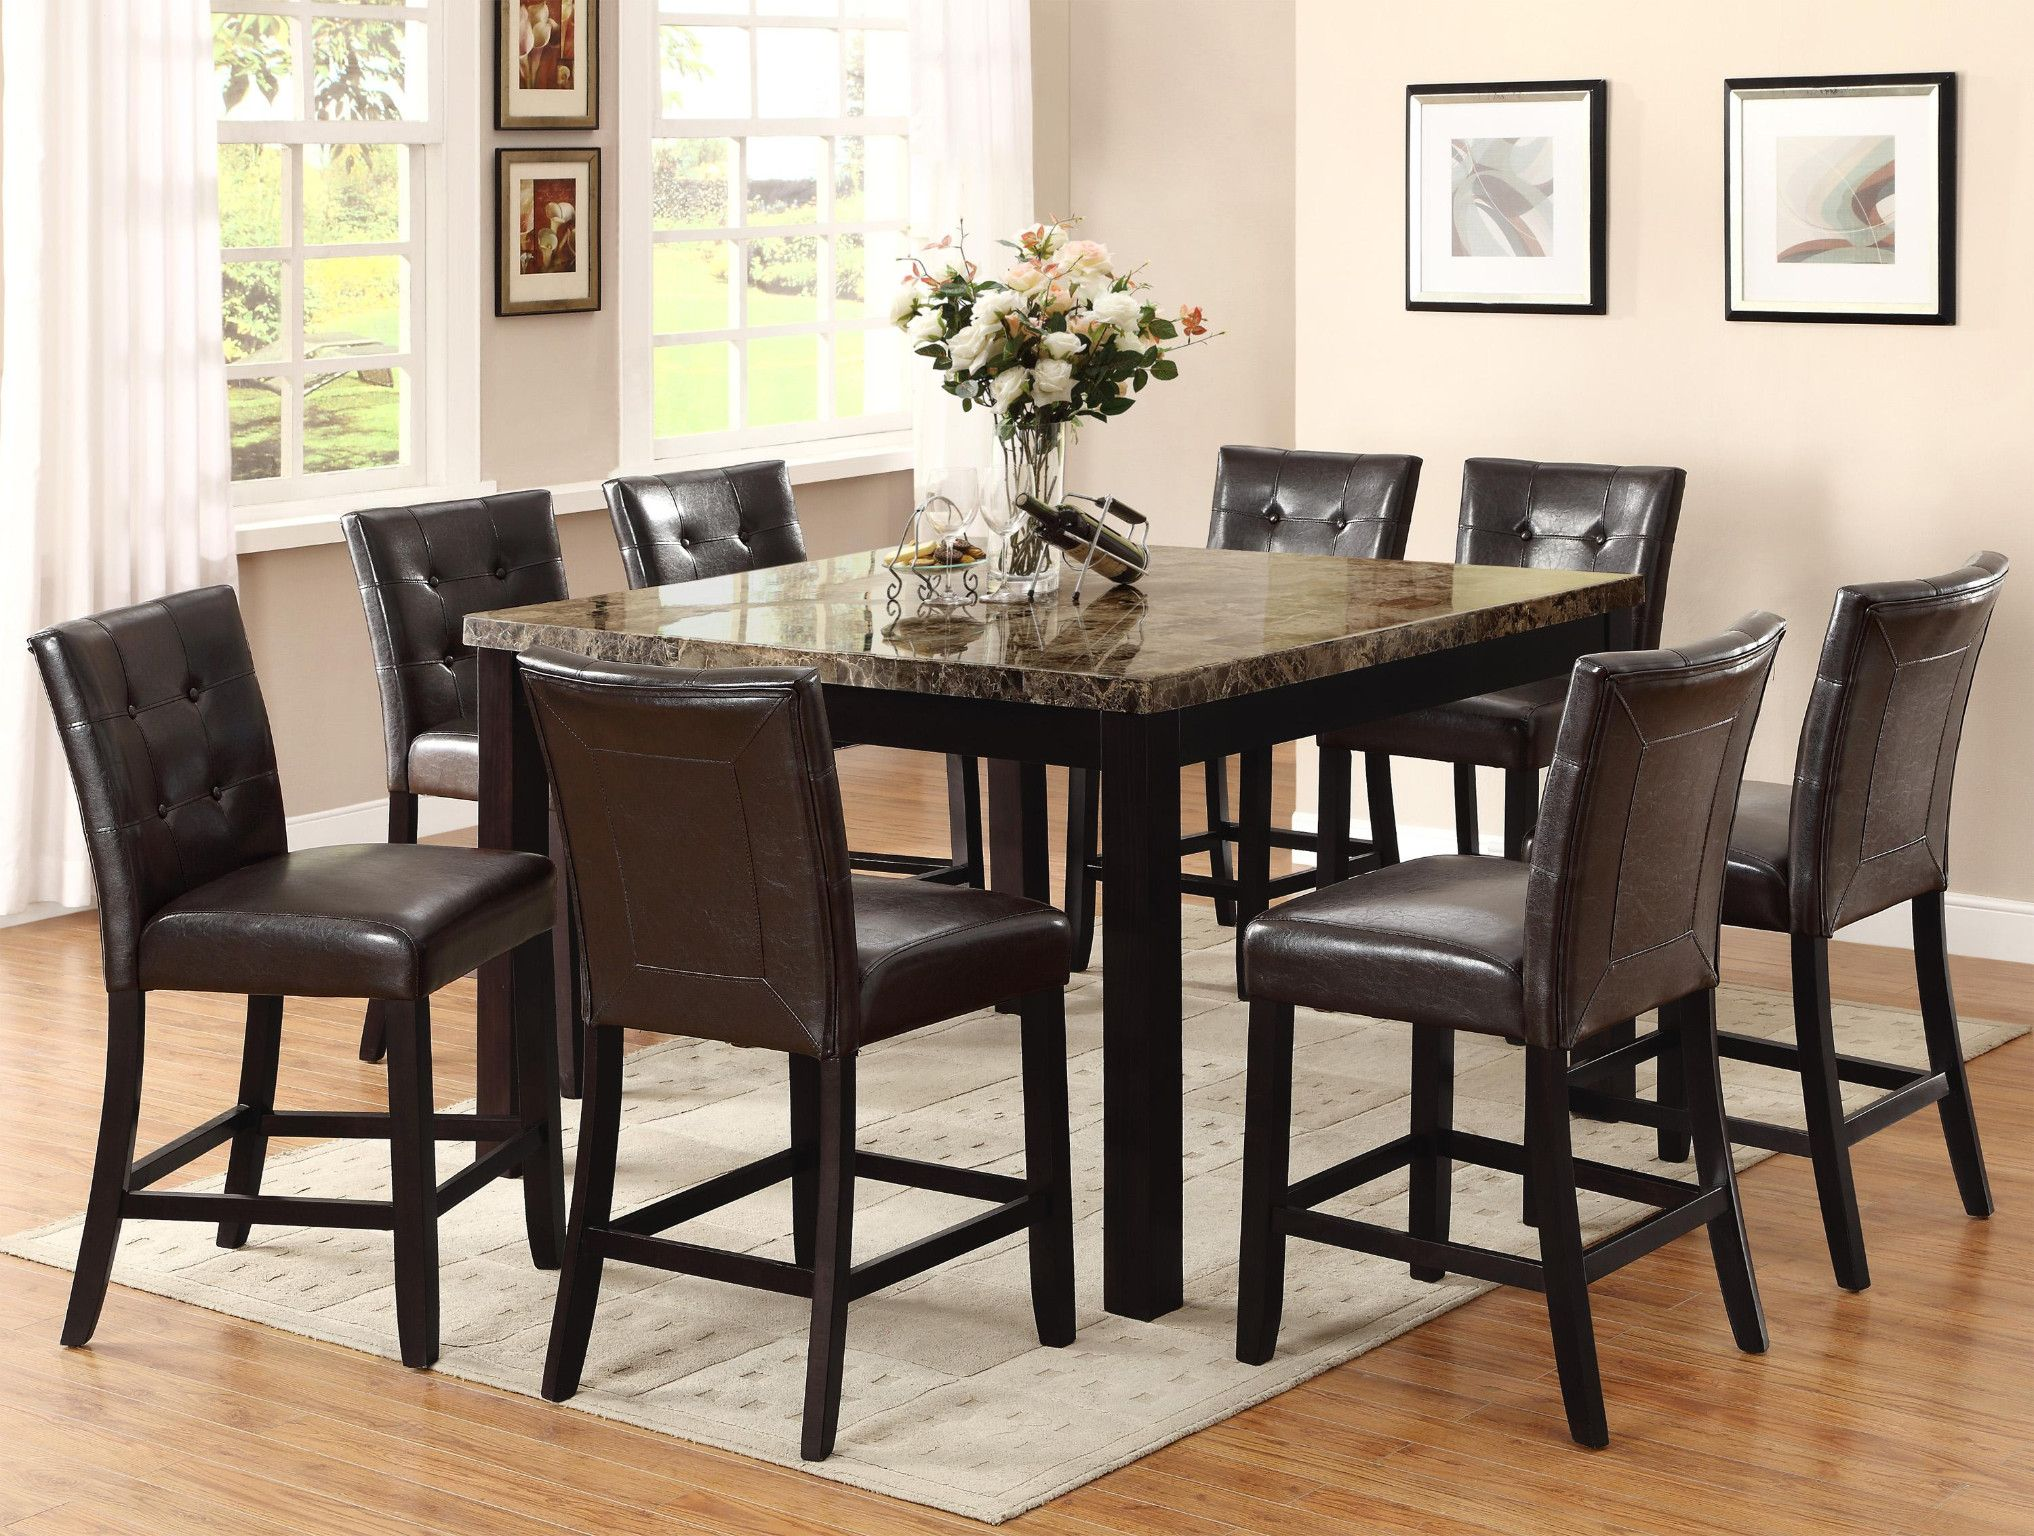 Bruce Genuine Marble Top 5 Piece Counter Height Table And 4 Chairs 769 00 Table Modern Square Dining Table Dining Room Design Square Dining Tables